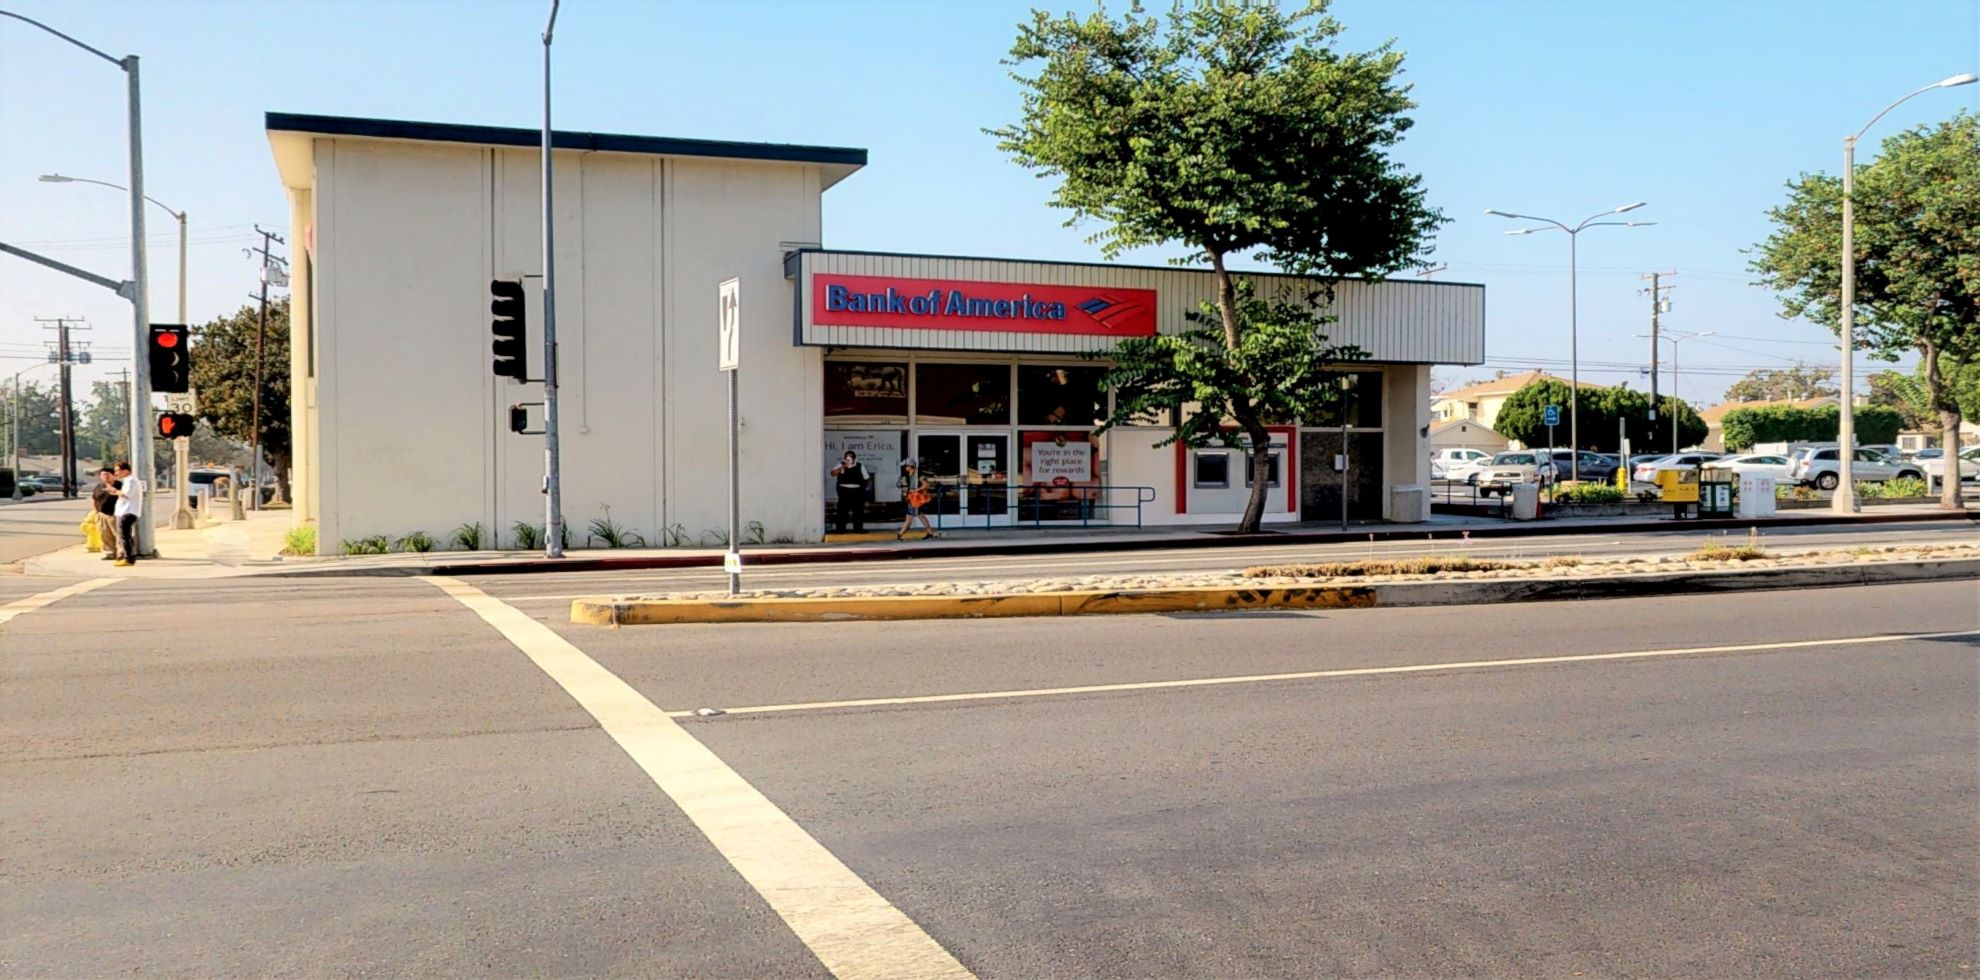 Bank of America financial center with walk-up ATM | 444 E Valley Blvd, Alhambra, CA 91801